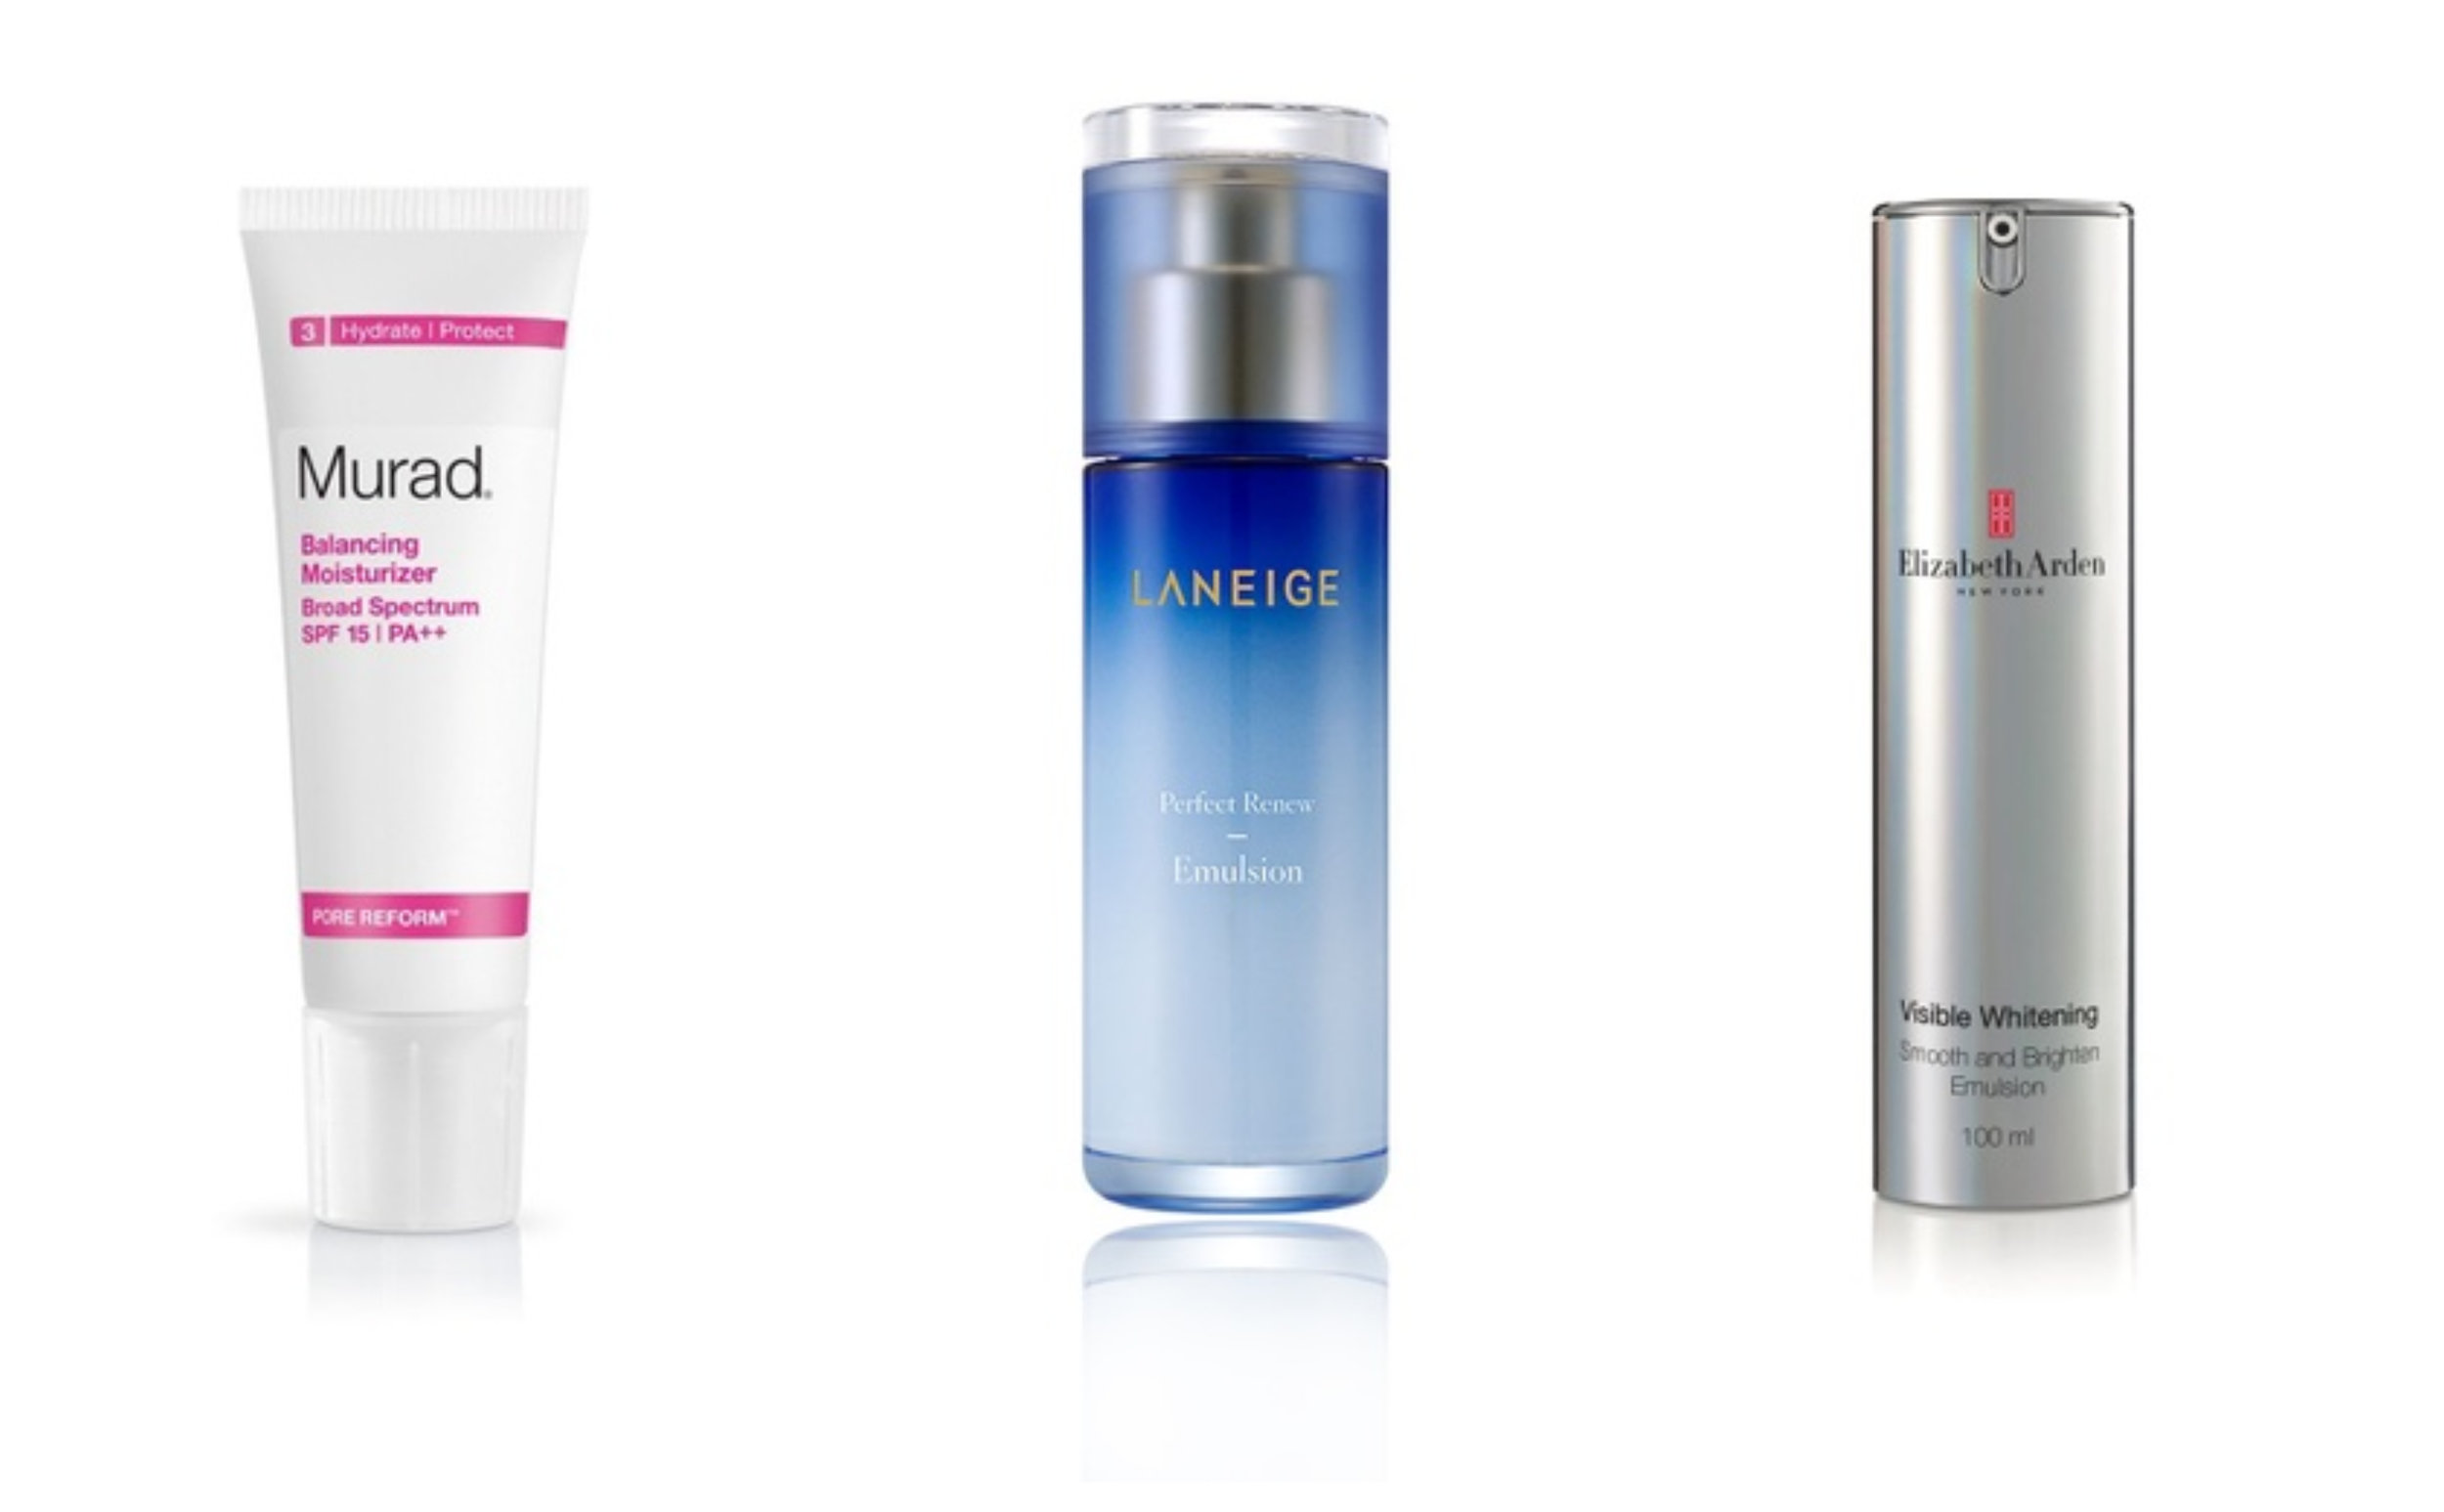 1.  MURAD Balancing Moisturiser SPF 15 , 2.  Laneige Perfect Renew Emulsion , 3.  Elizabeth Arden Visible Whitening Smooth And Brighten Emulsion